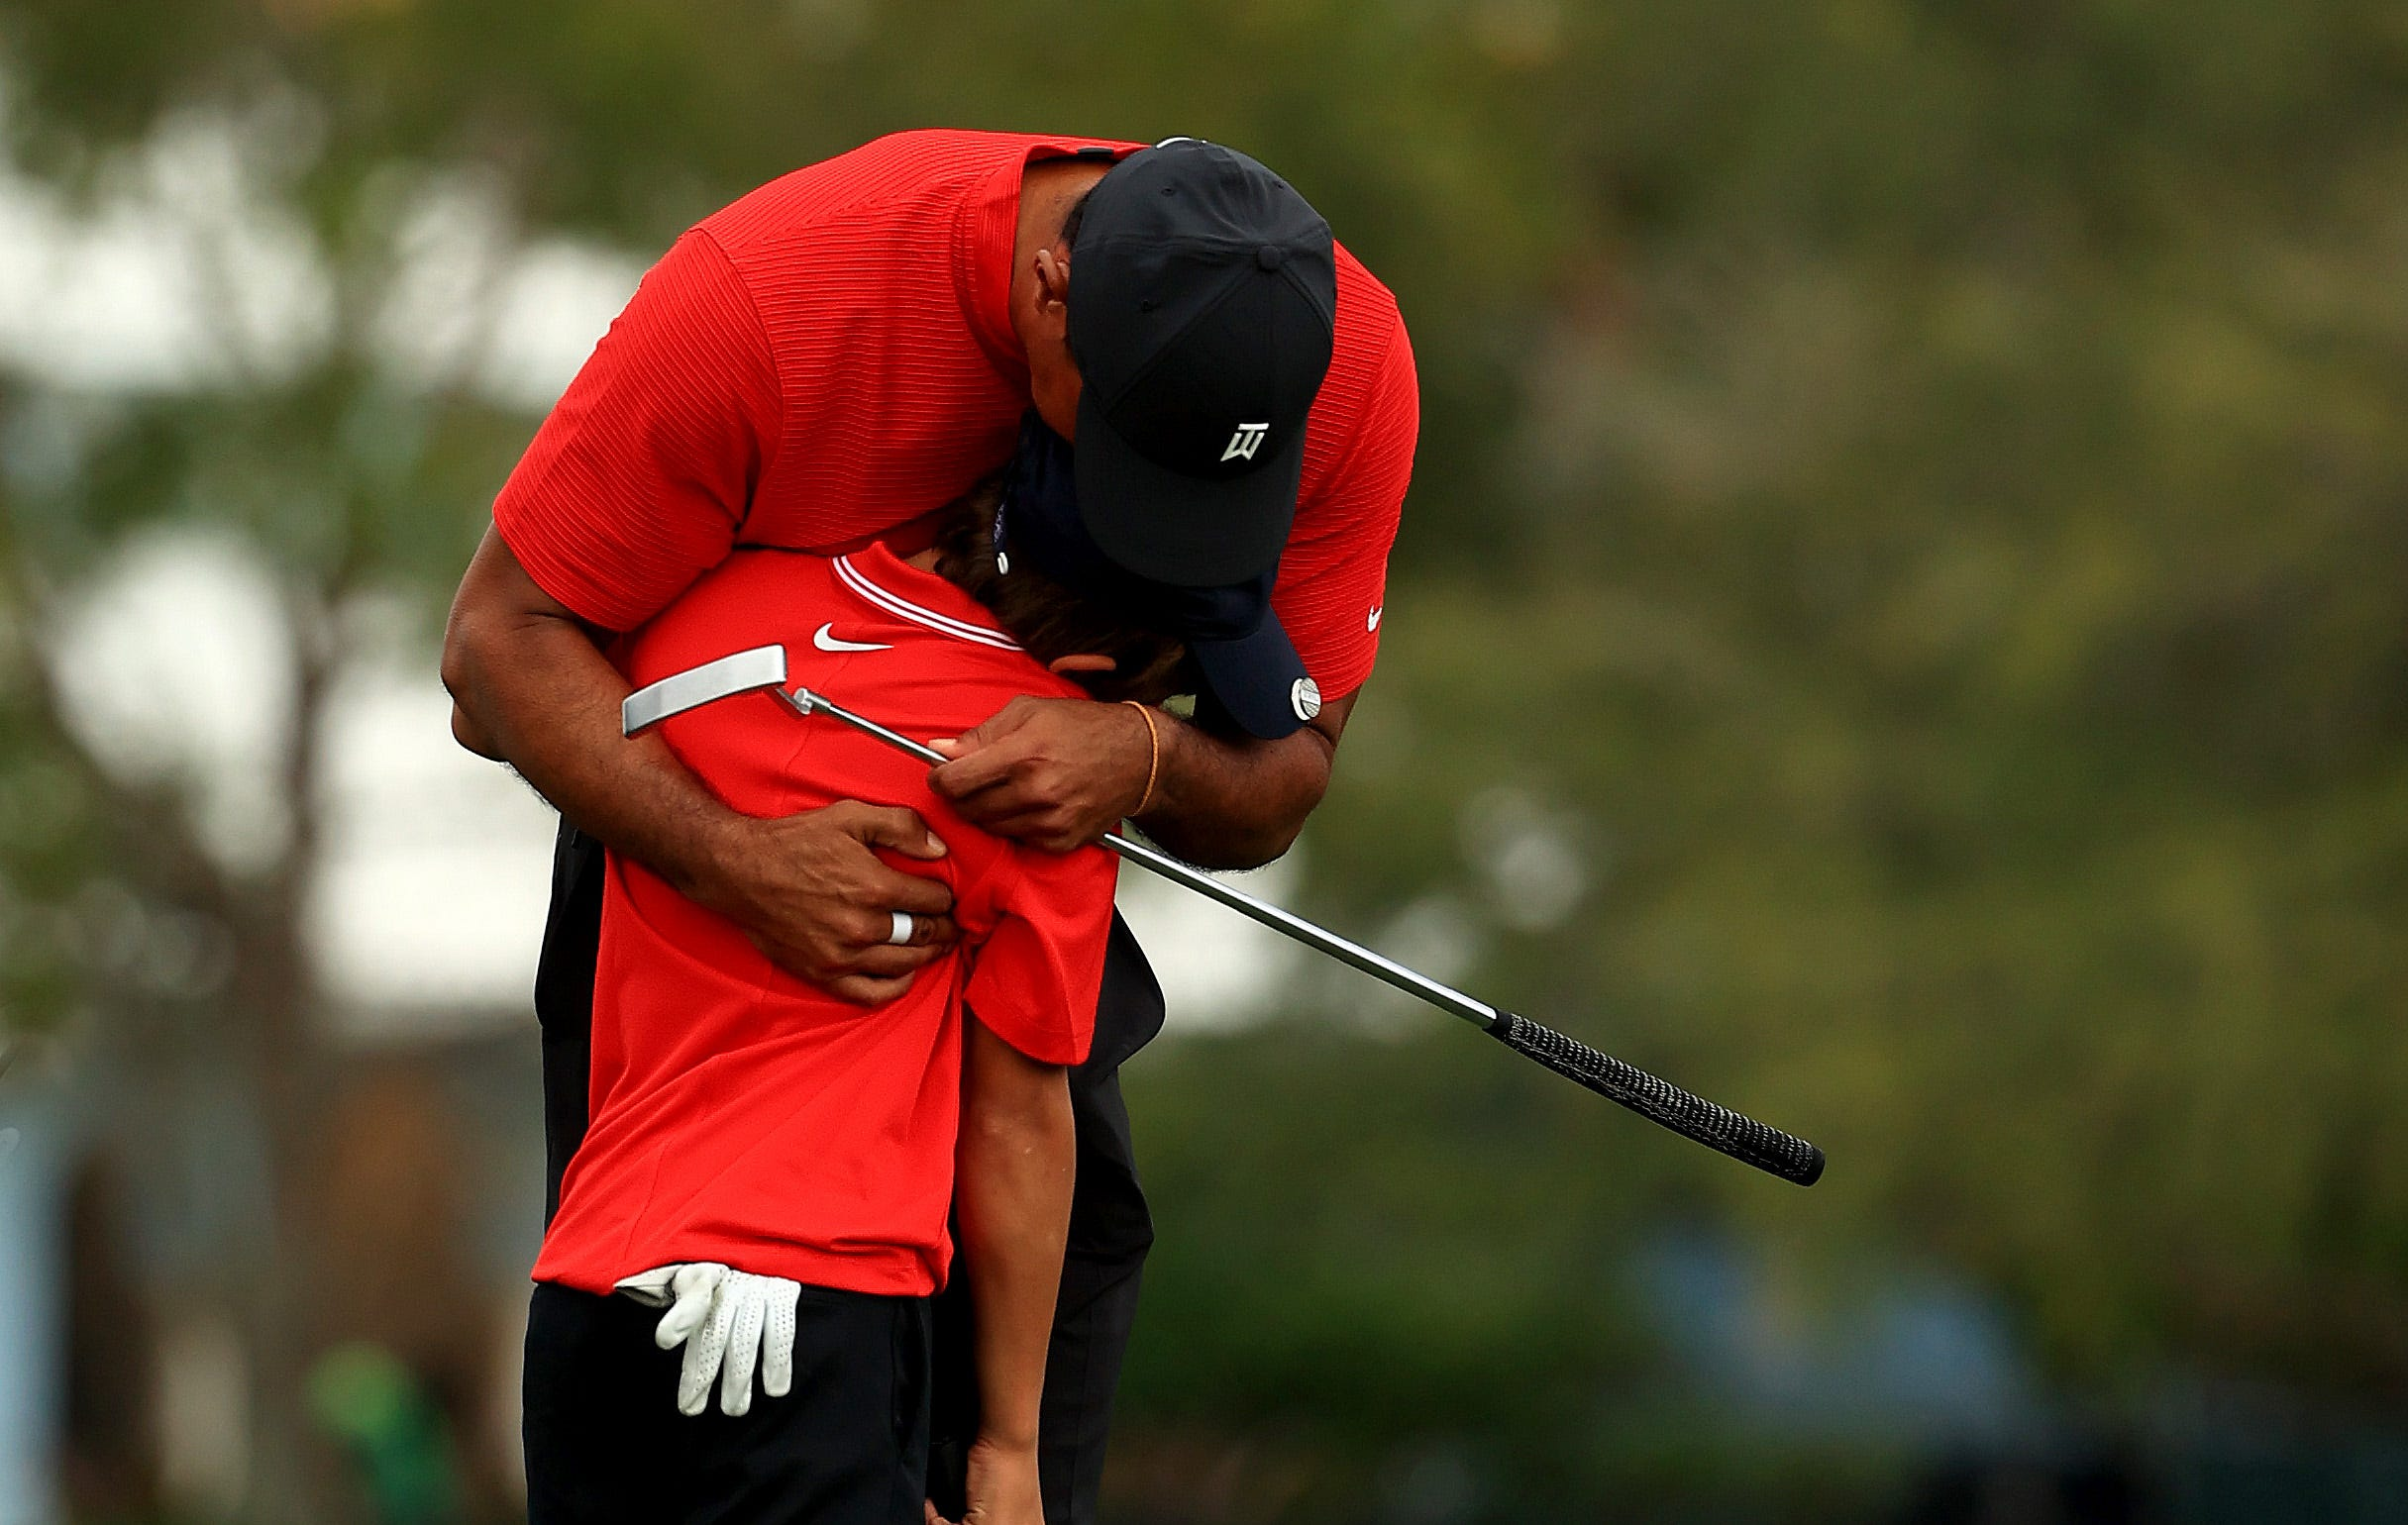 Opinion: We can t stop talking about Tiger Woods and his golf career, even when we should